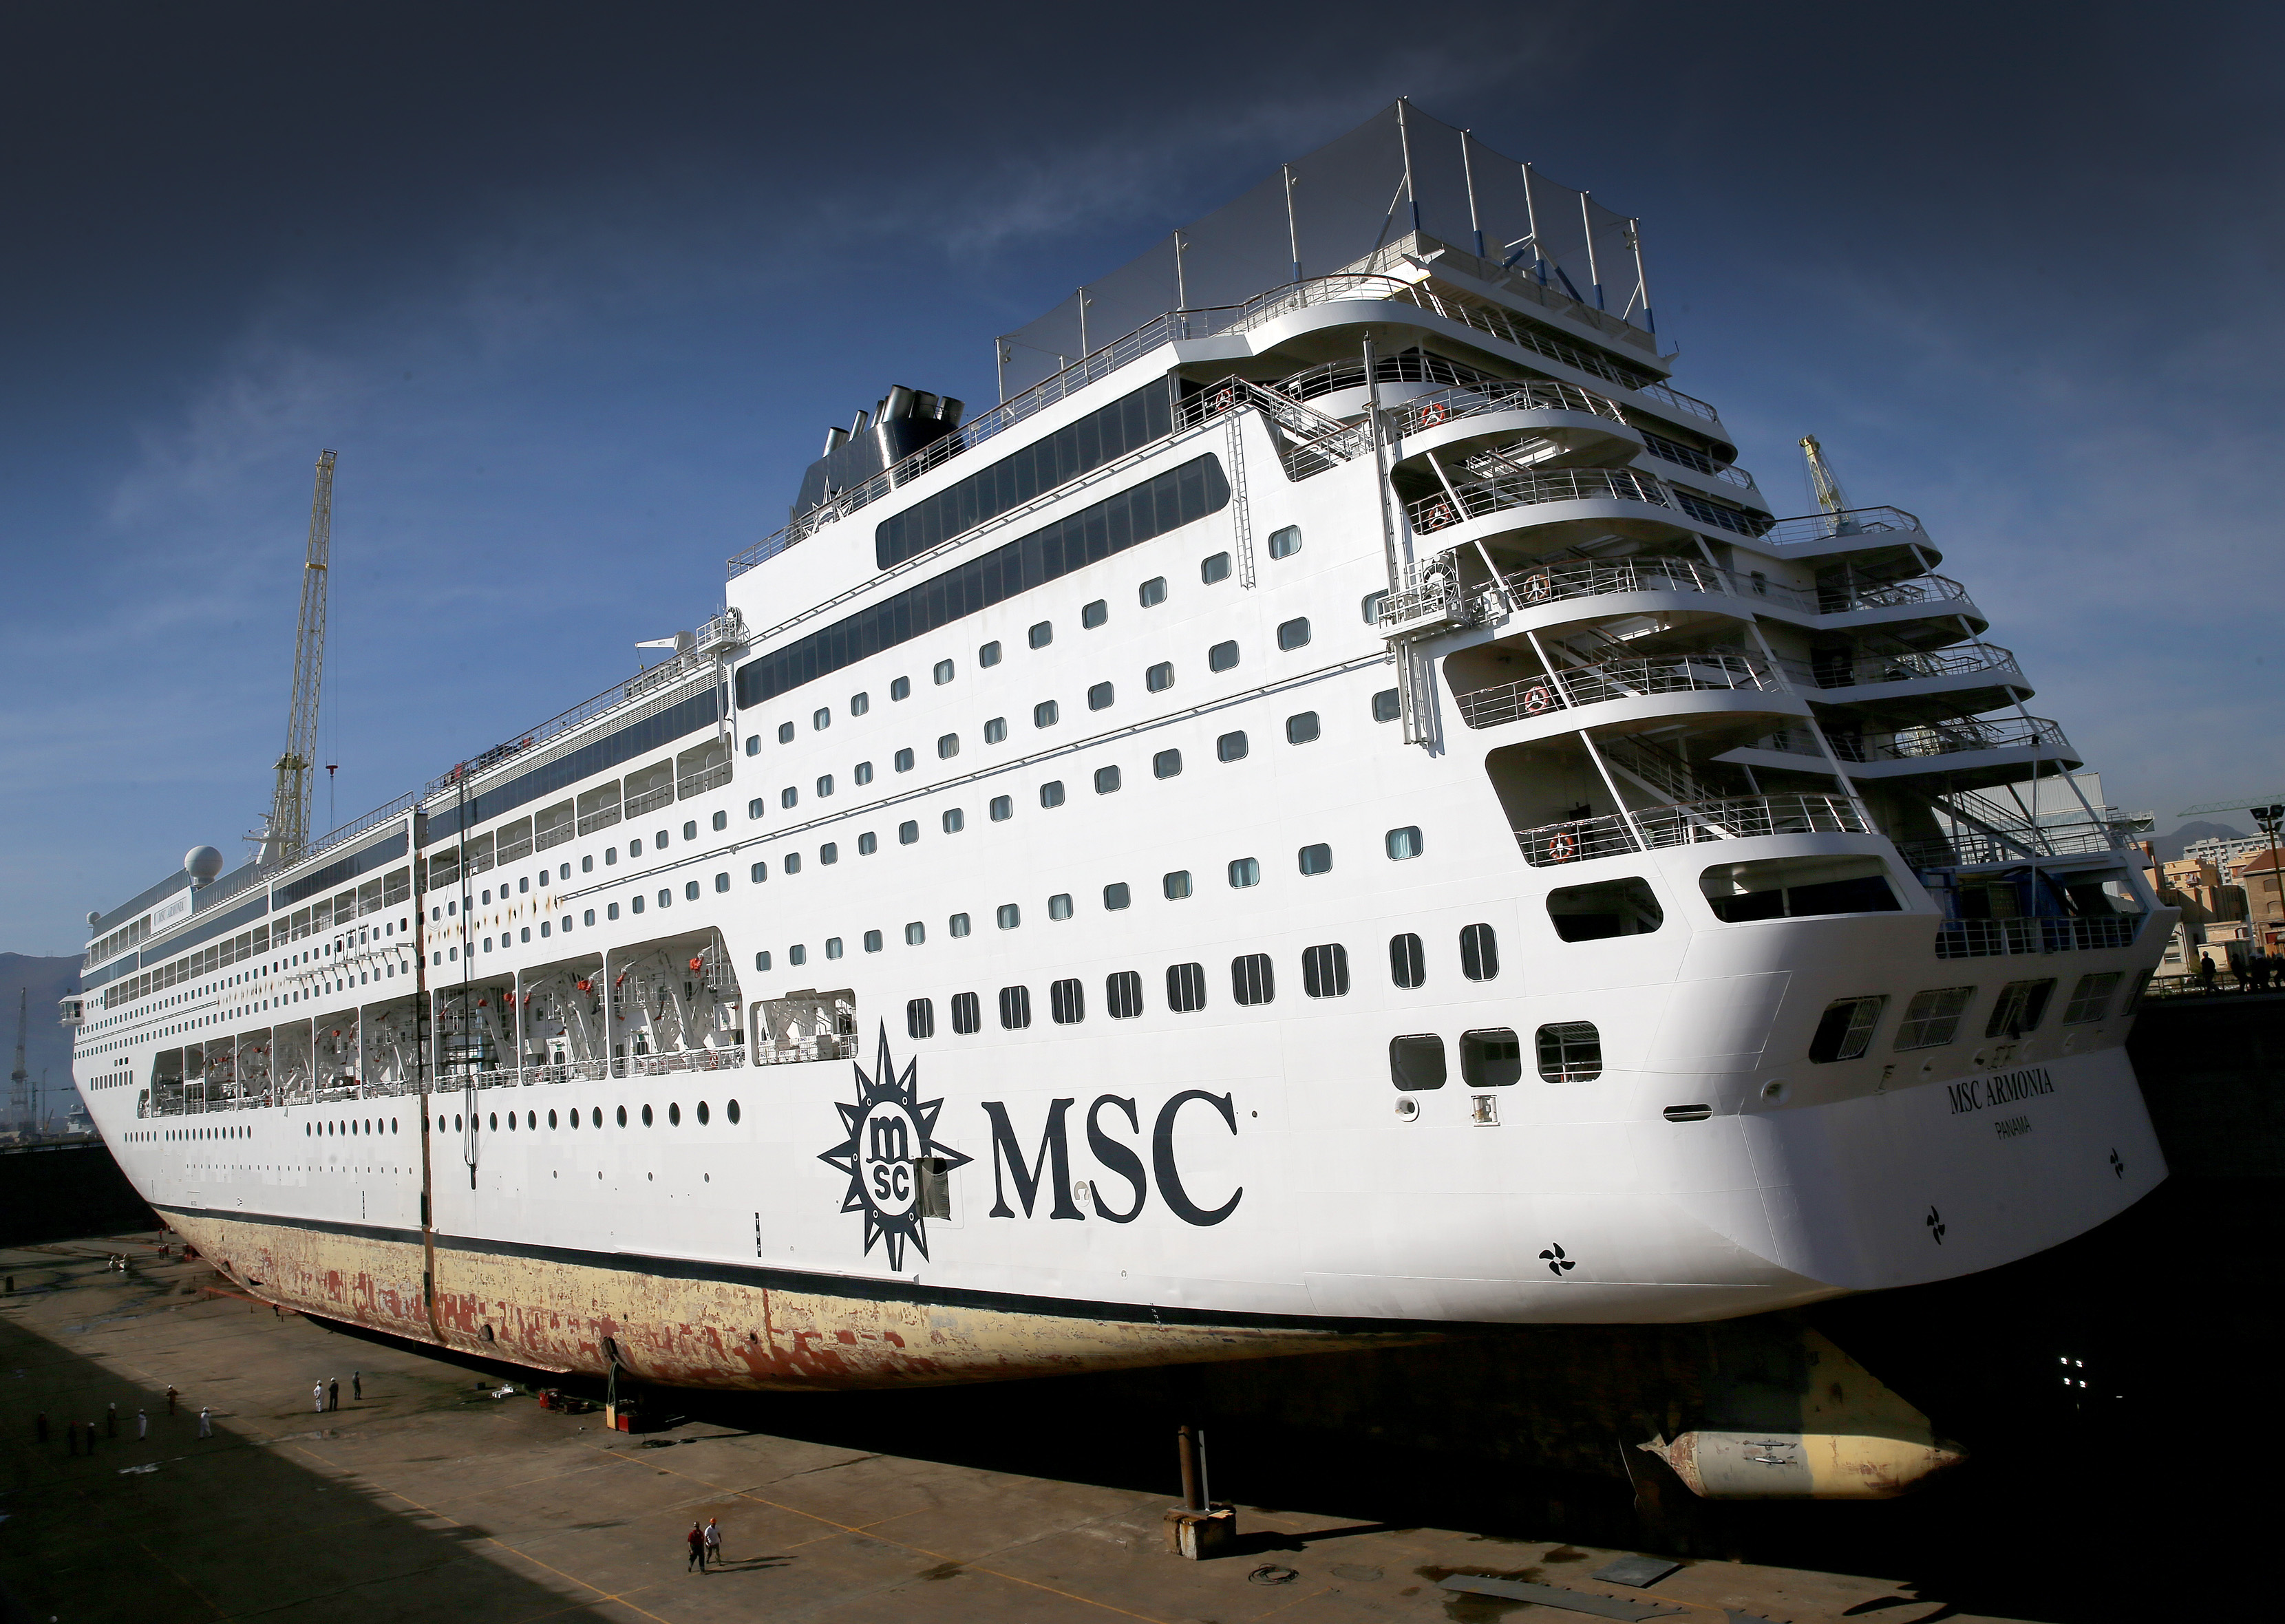 Msc armonia cut in two msc cruises renaissance project for Immagini msc